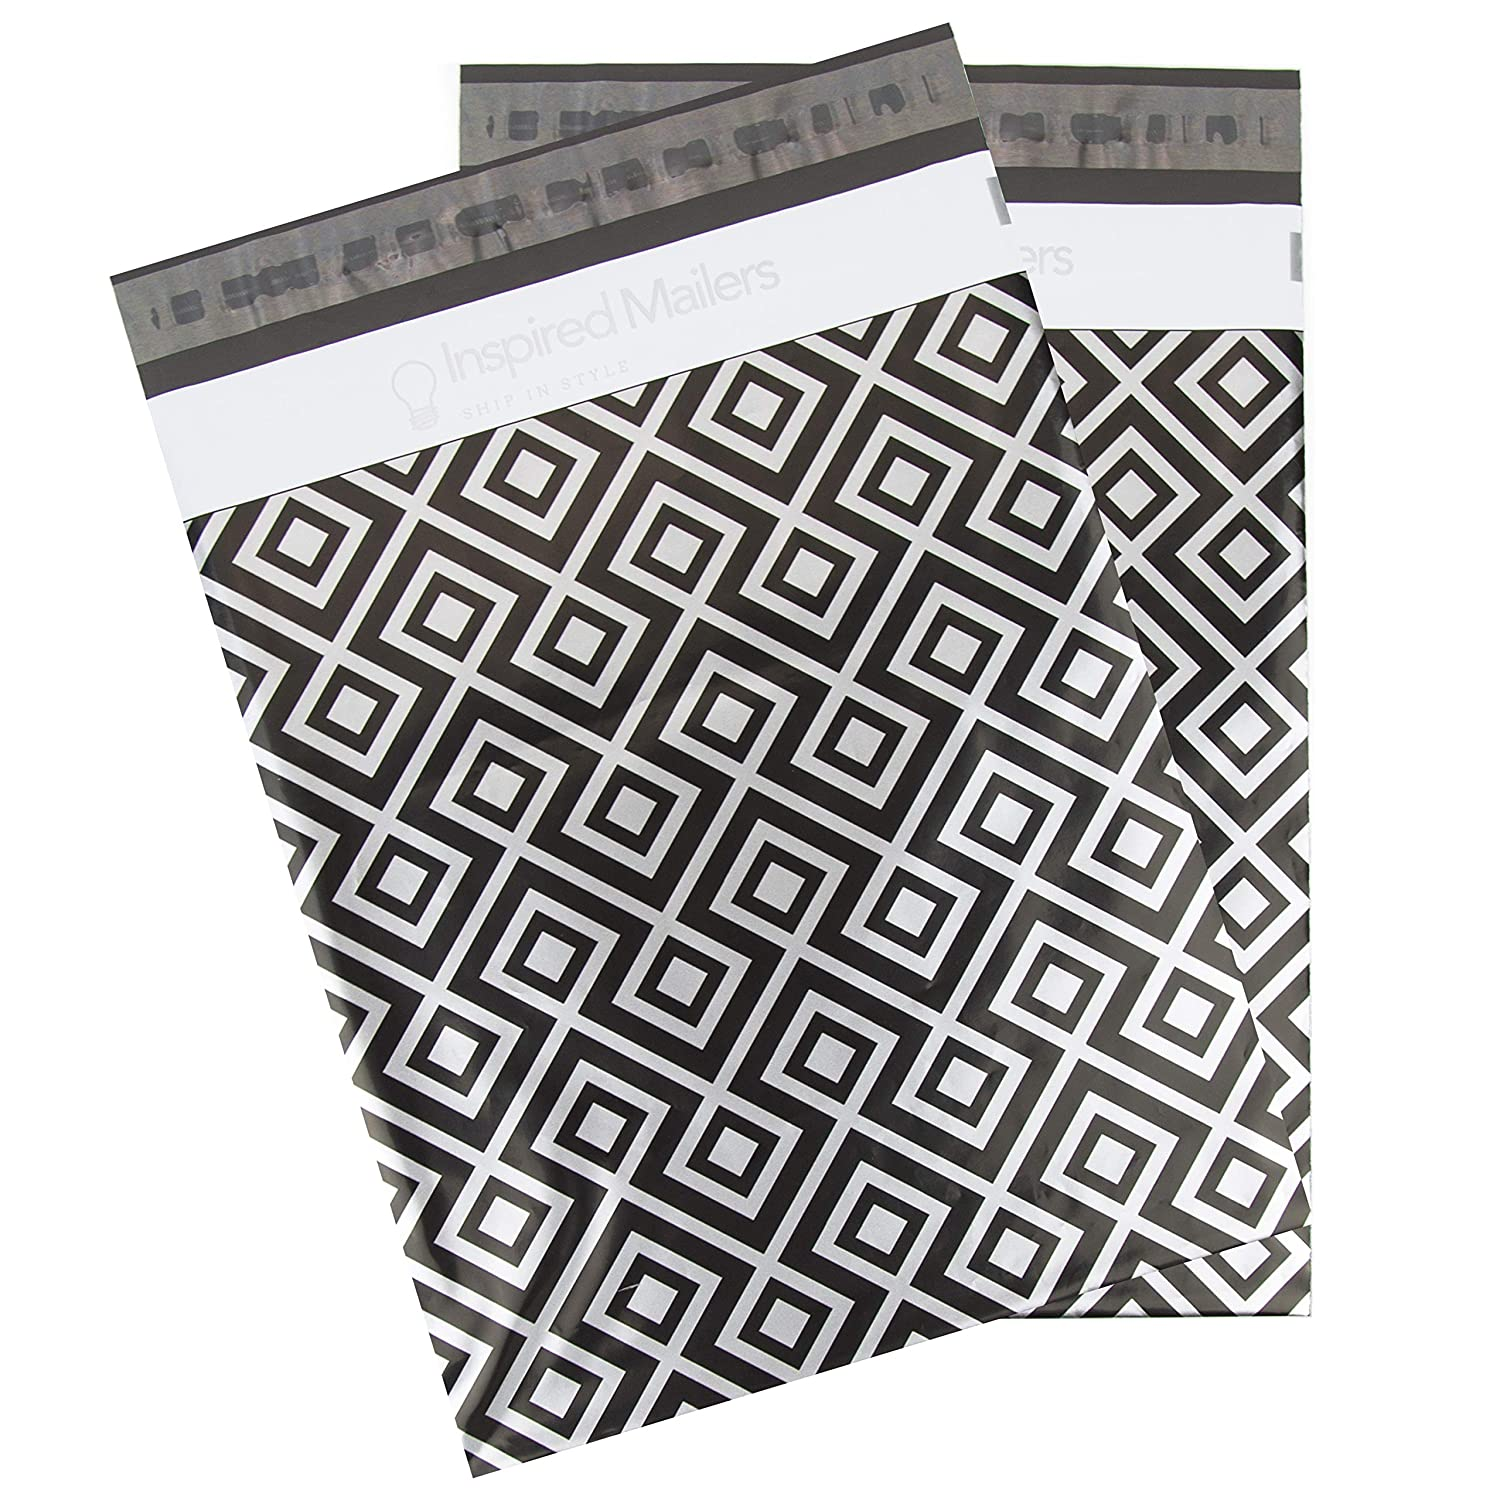 Amazon.com : Inspired Mailers Poly Mailers 10x13 Geometric Silver/Black - Pack of 100 - Unpadded Shipping Bags : Office Products